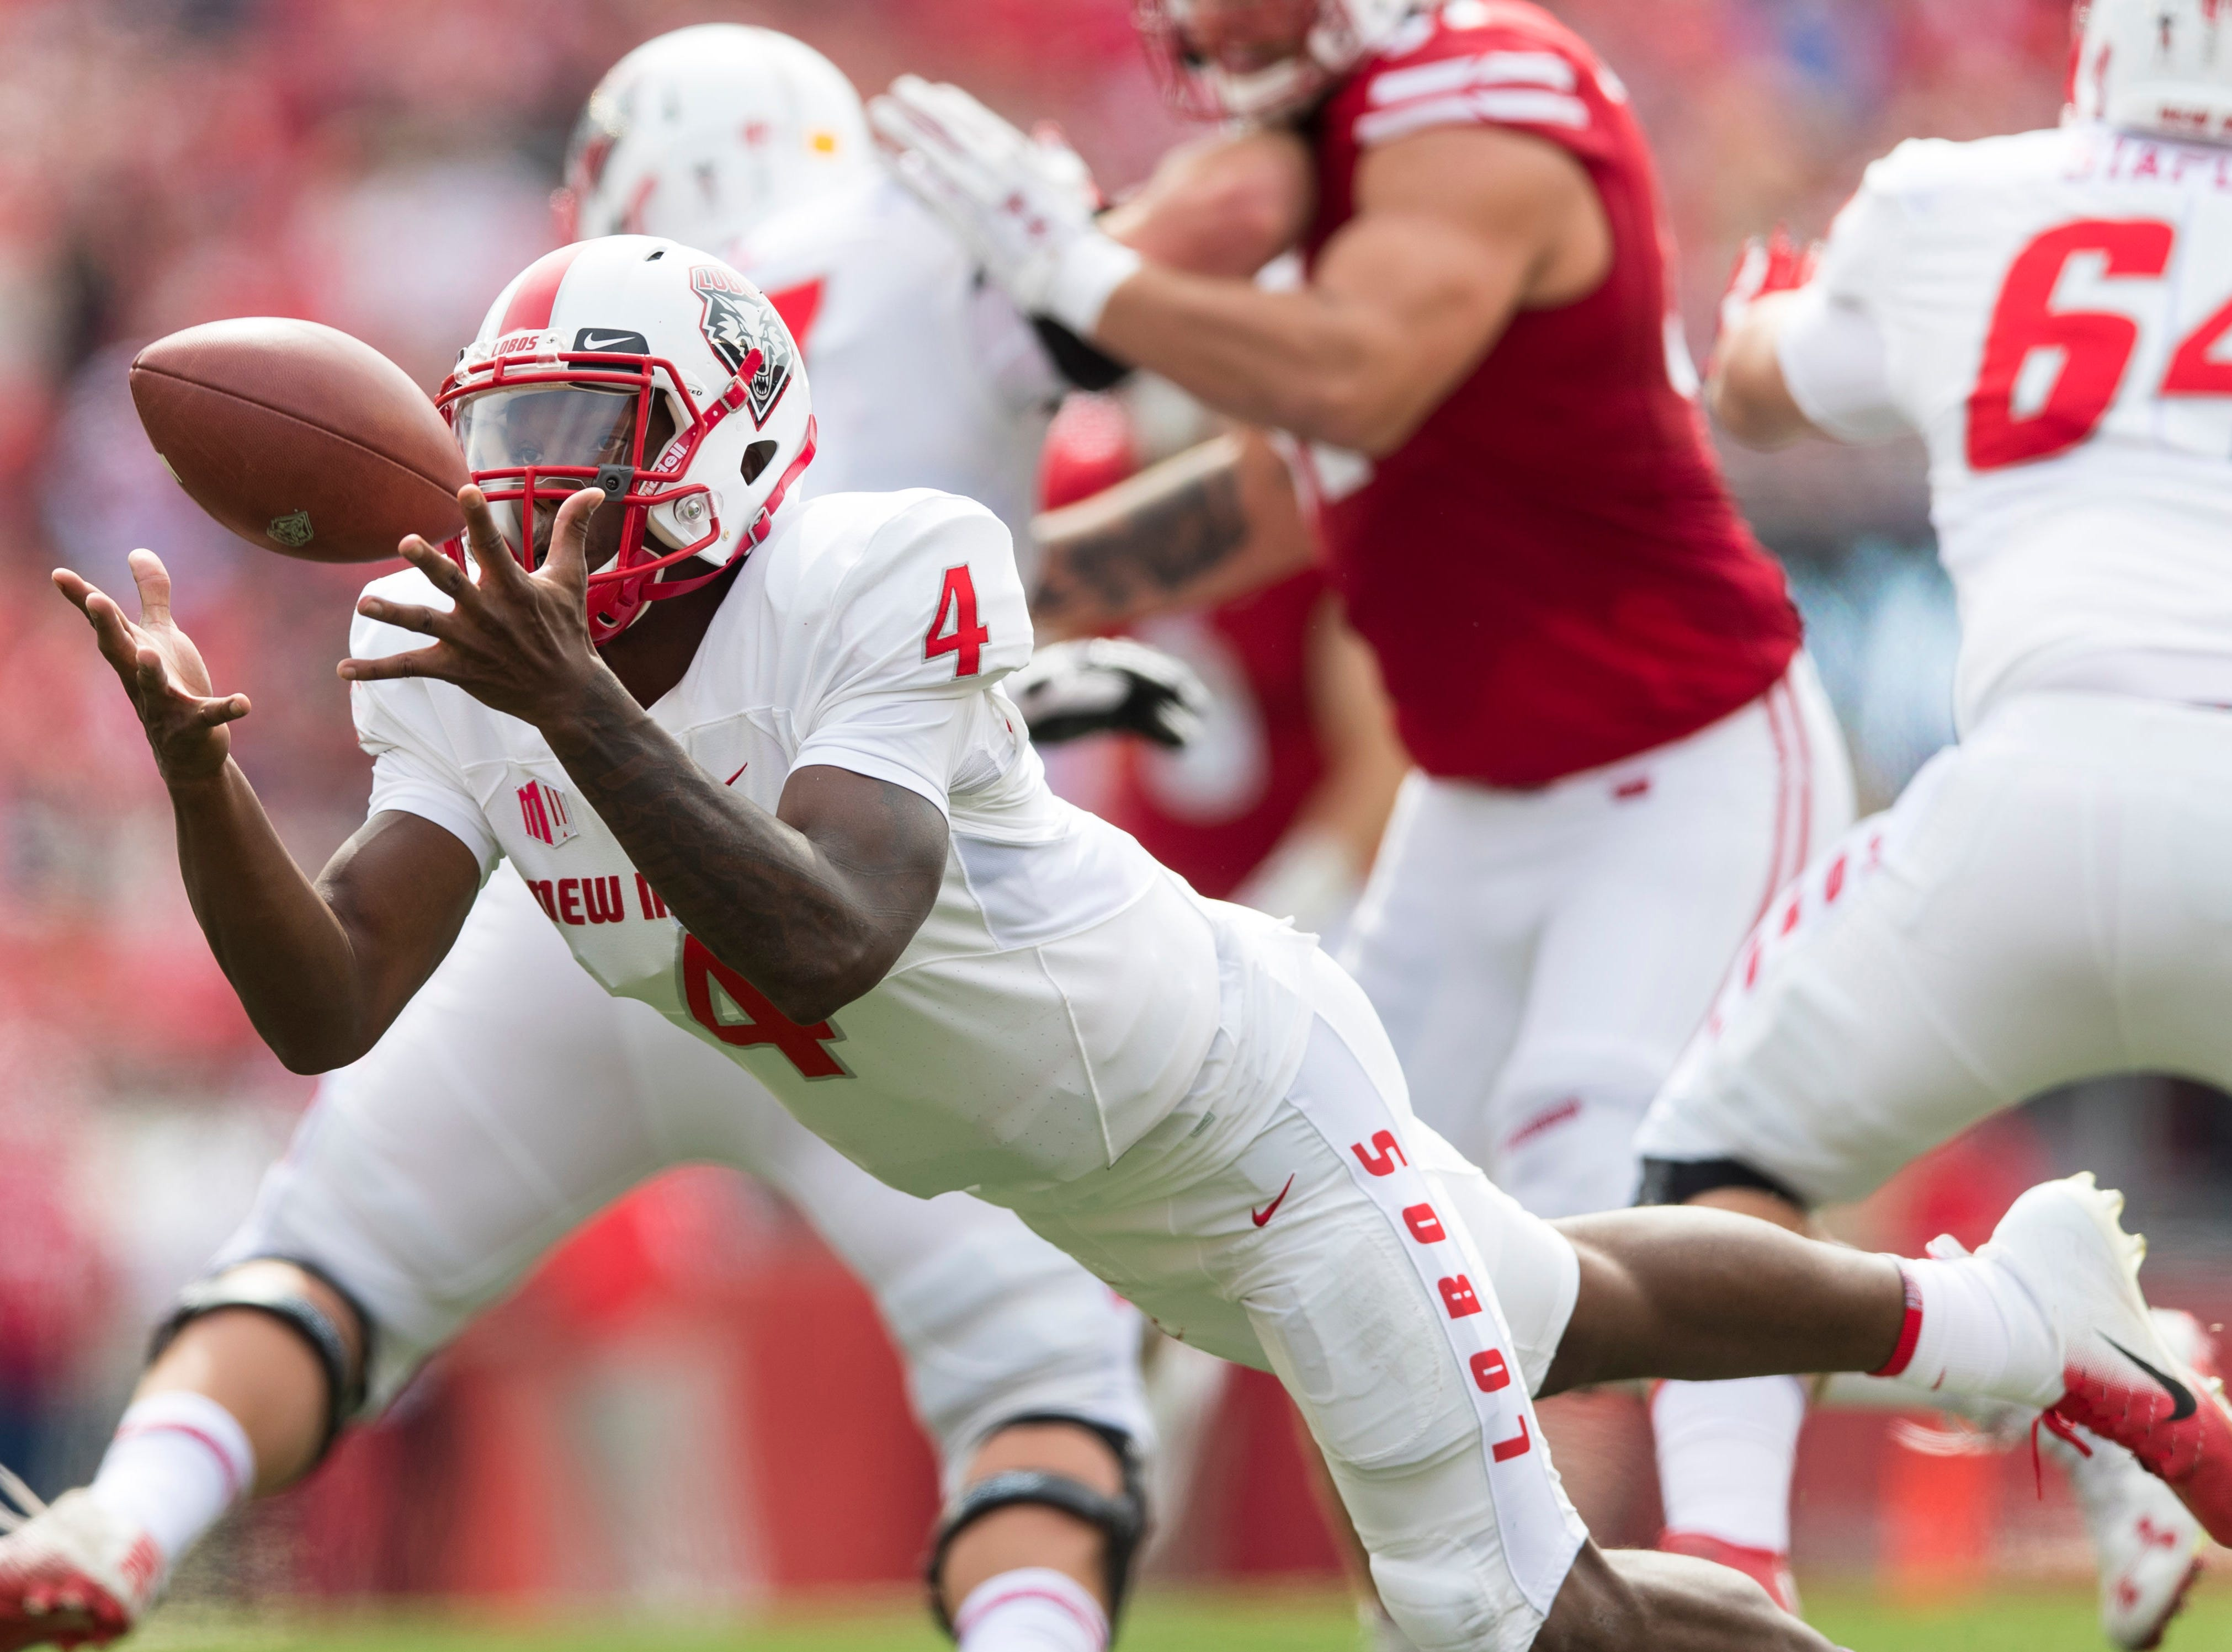 New Mexico Lobos quarterback Sheriron Jones (4) dives to catch the snap during the second quarter against the Wisconsin Badgers at Camp Randall